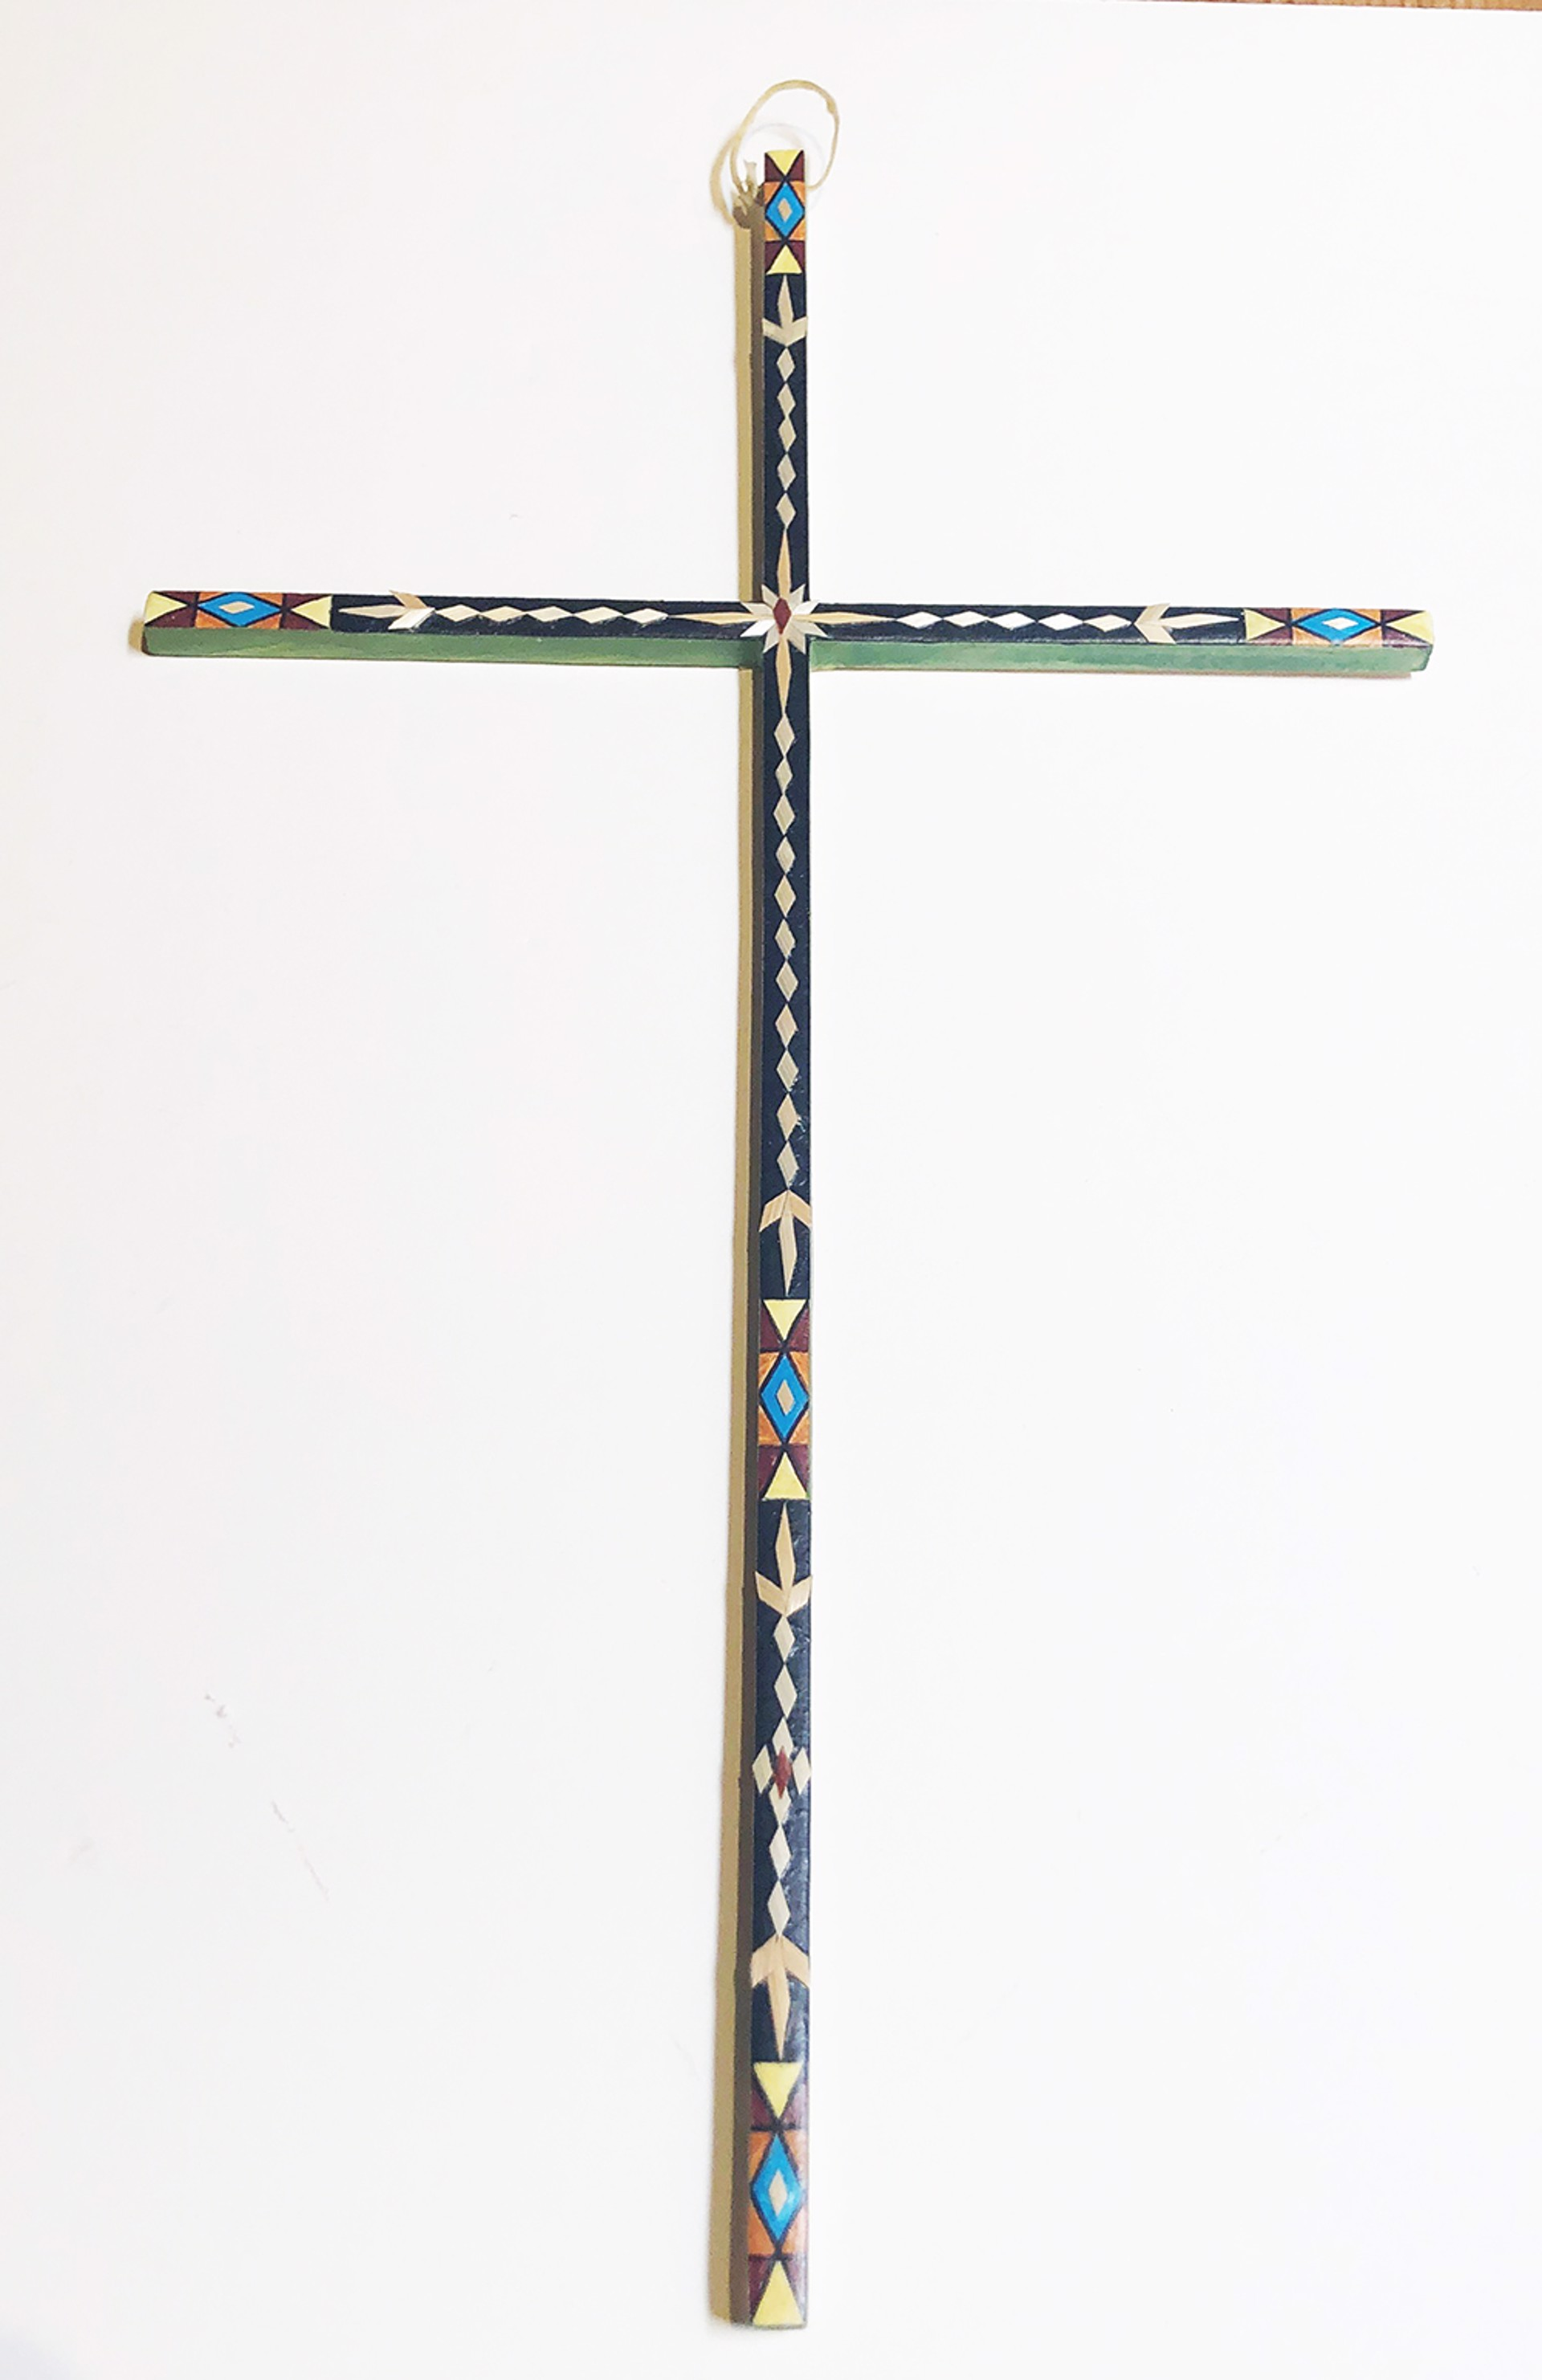 Cruz de la Sagrada Fe by Charlie Sanchez Jr